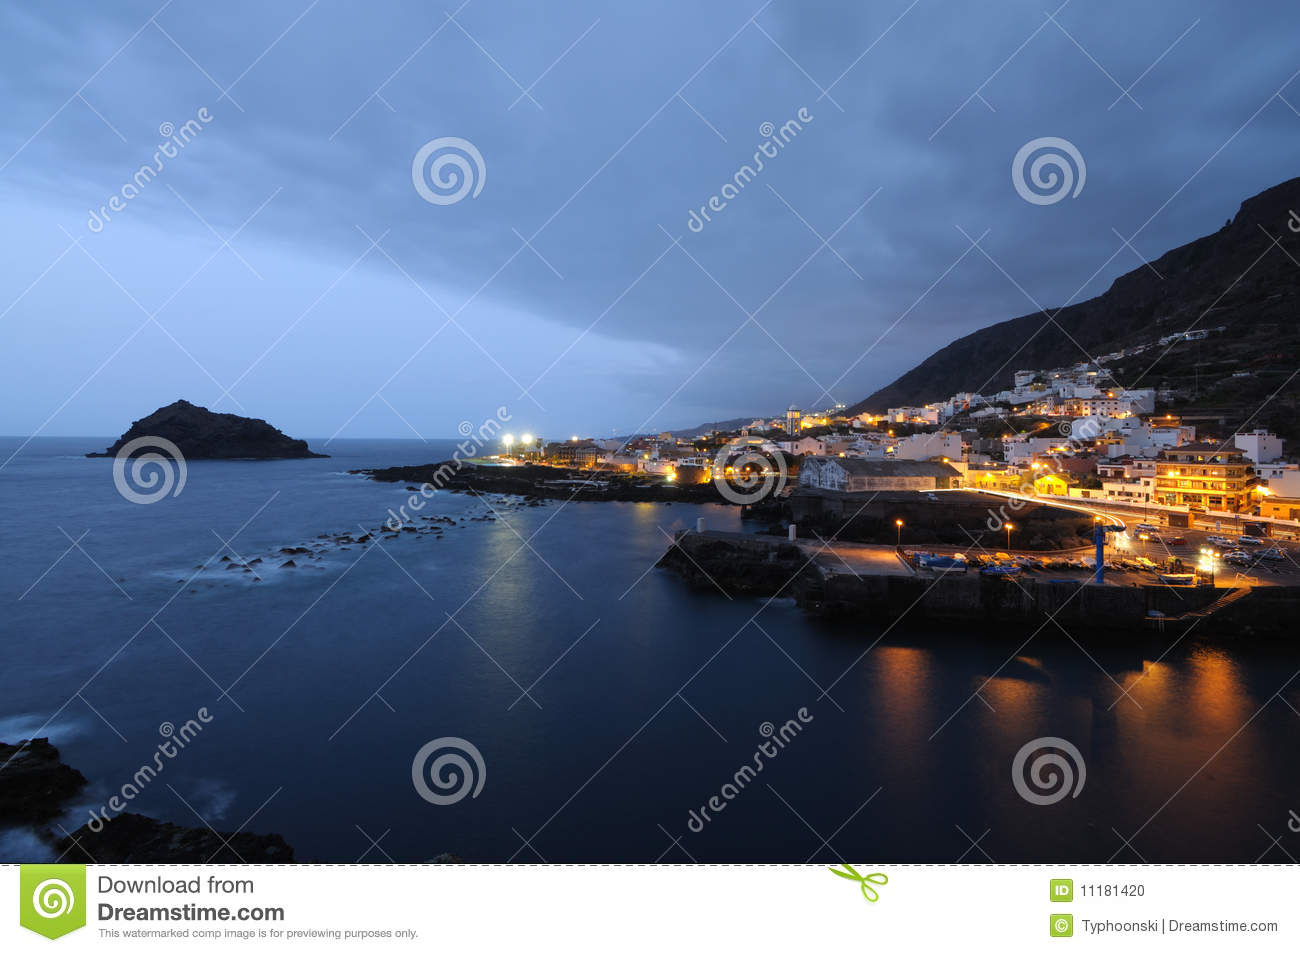 Garachico at night, Tenerife